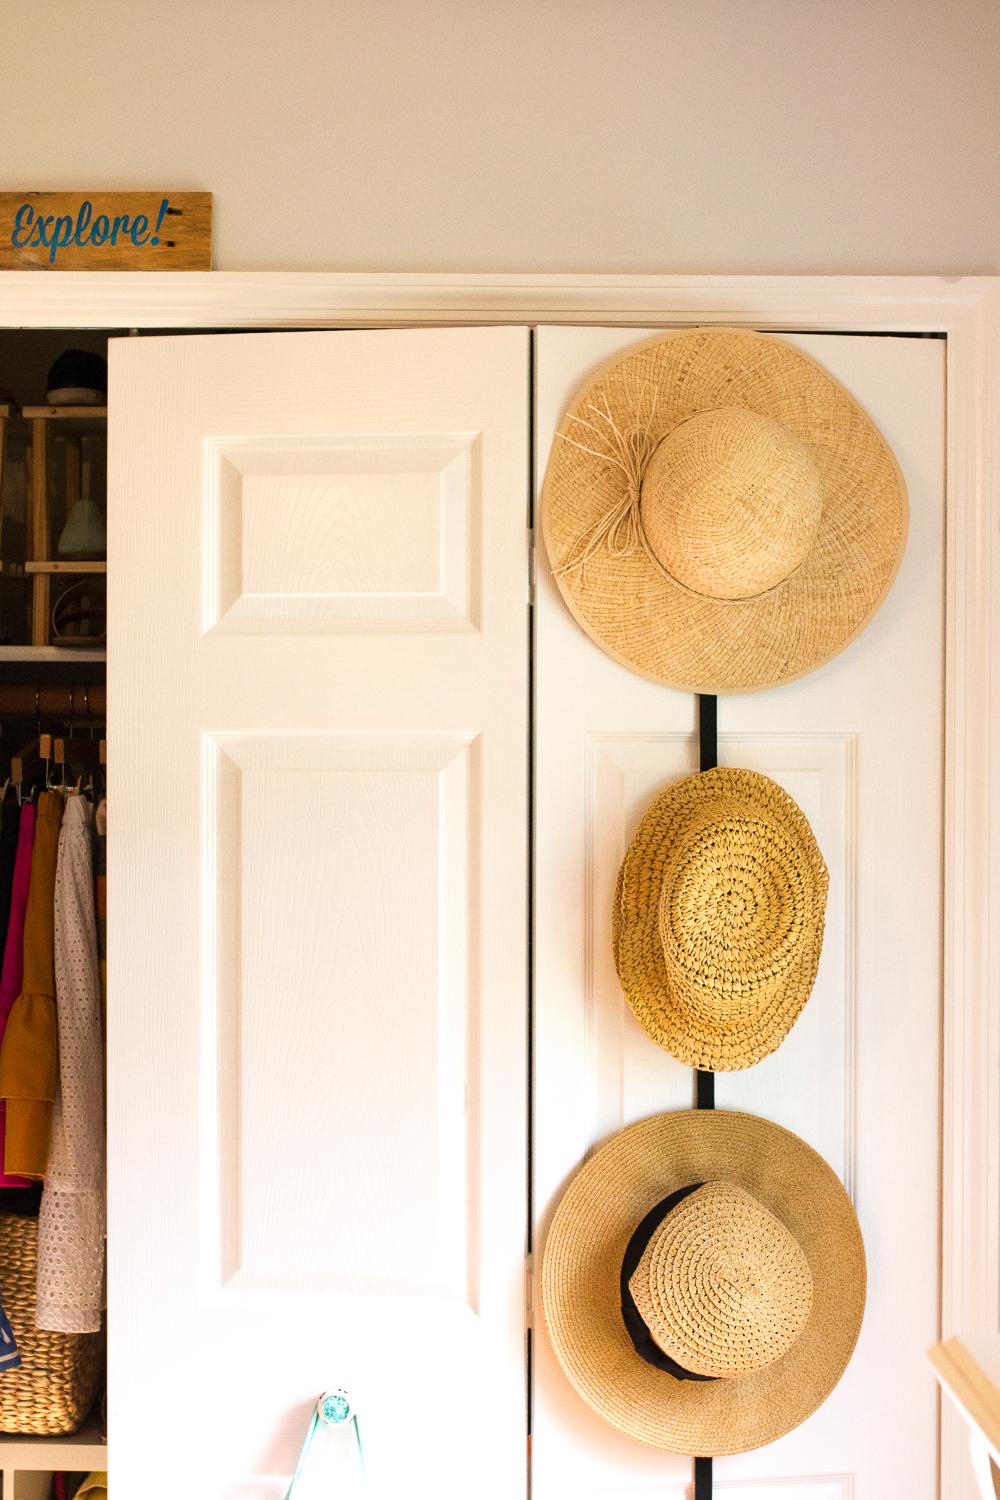 How to Organize hats in a Small Bedroom